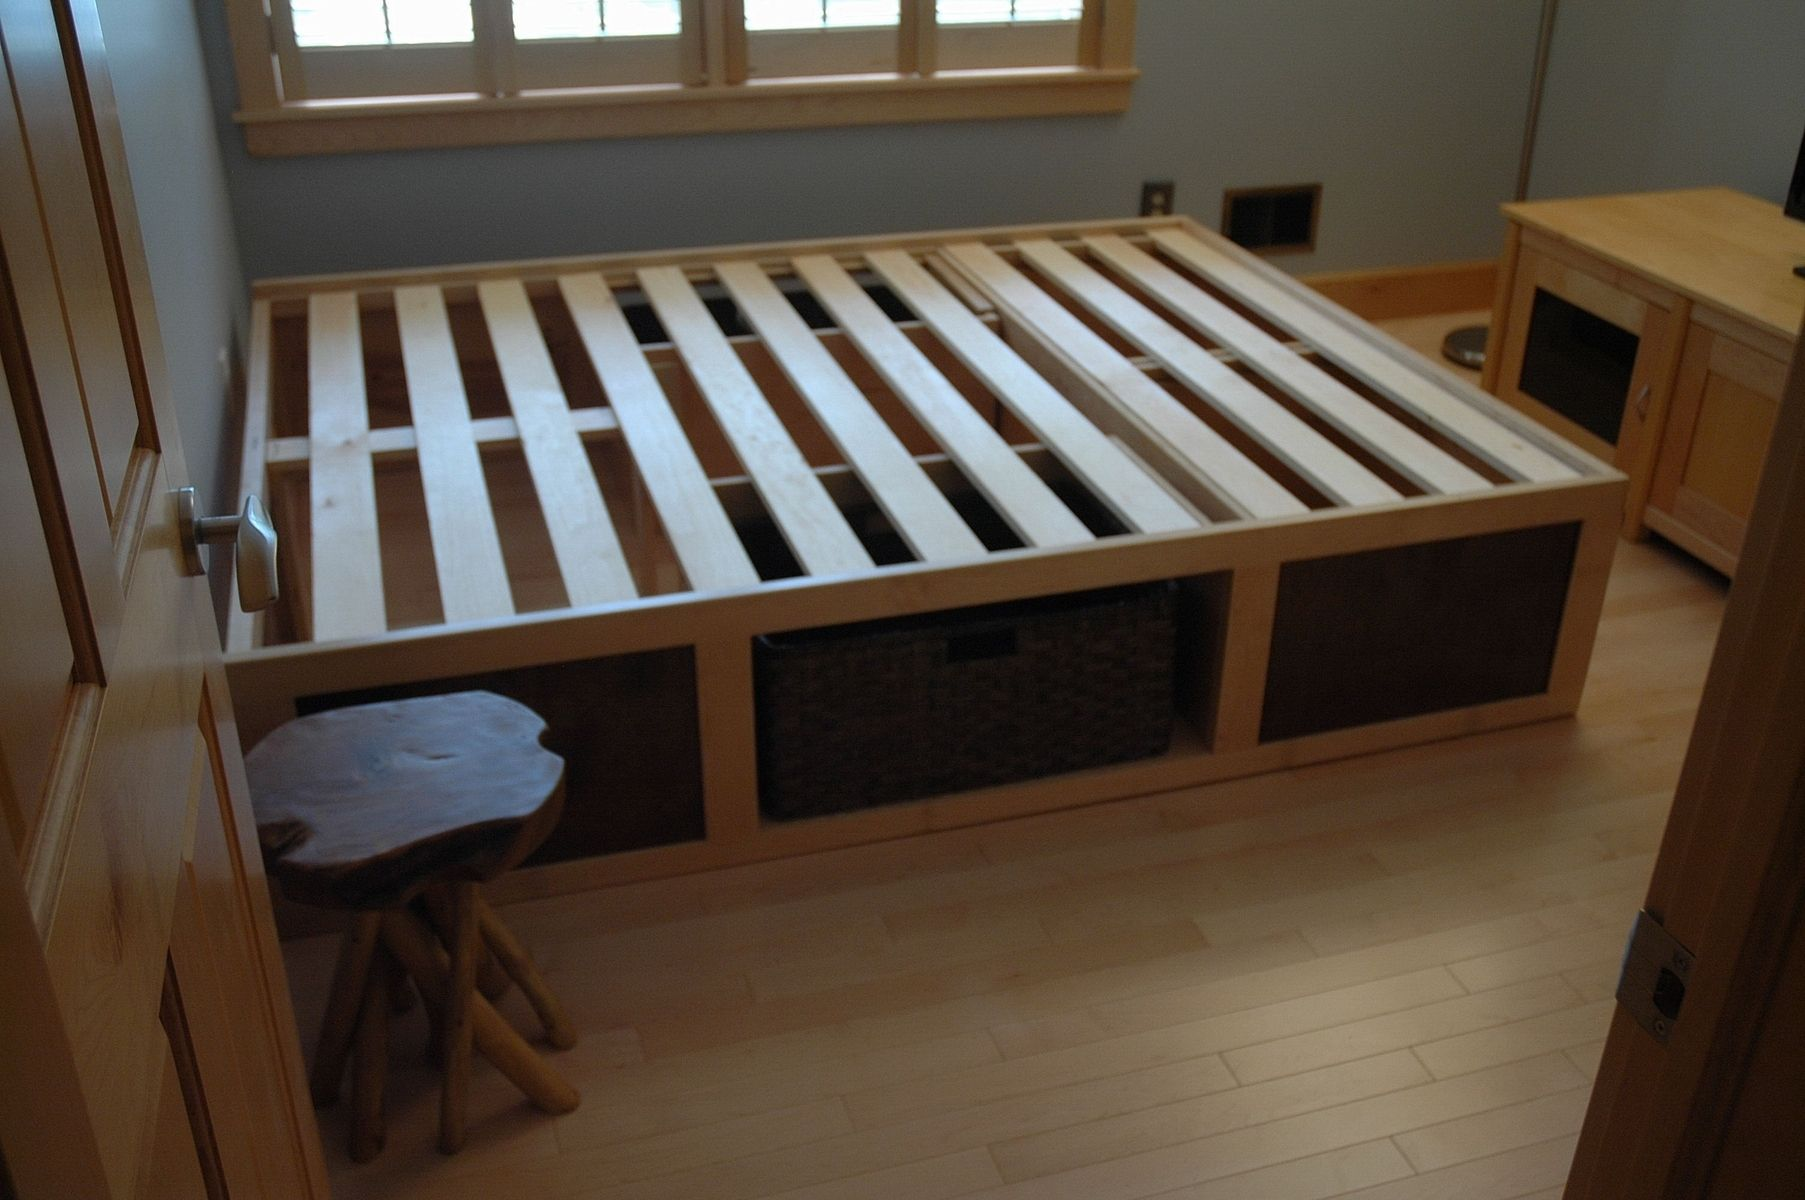 60 X 80 Platform Bed With Storage Baskets DIY CRAFTS